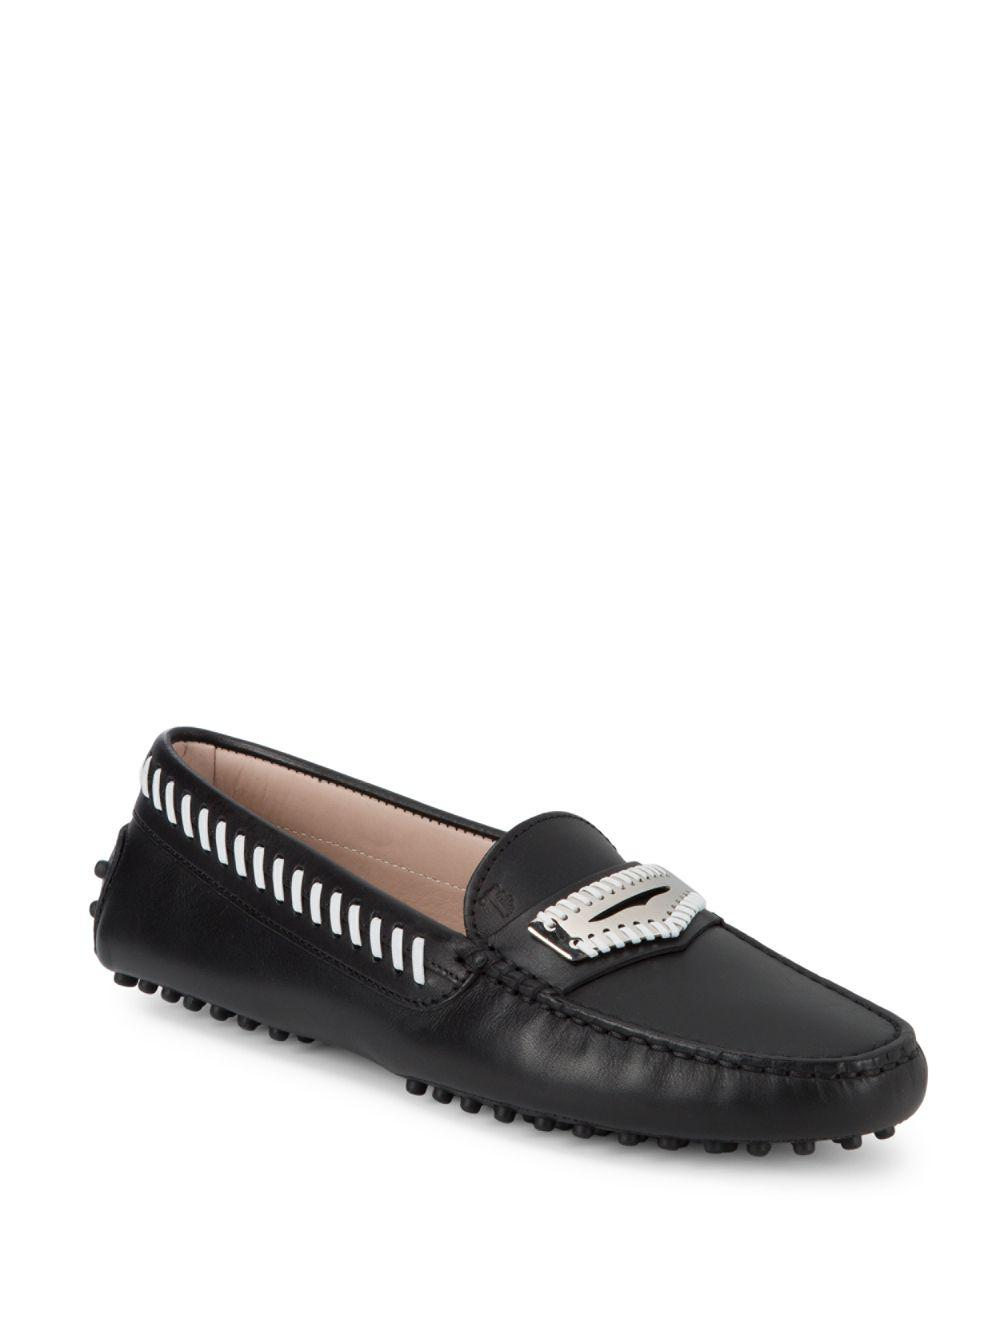 Tod's Round-Toe Leather Loafers 2014 cheap price sale new styles outlet pre order discount sneakernews aPEcjox